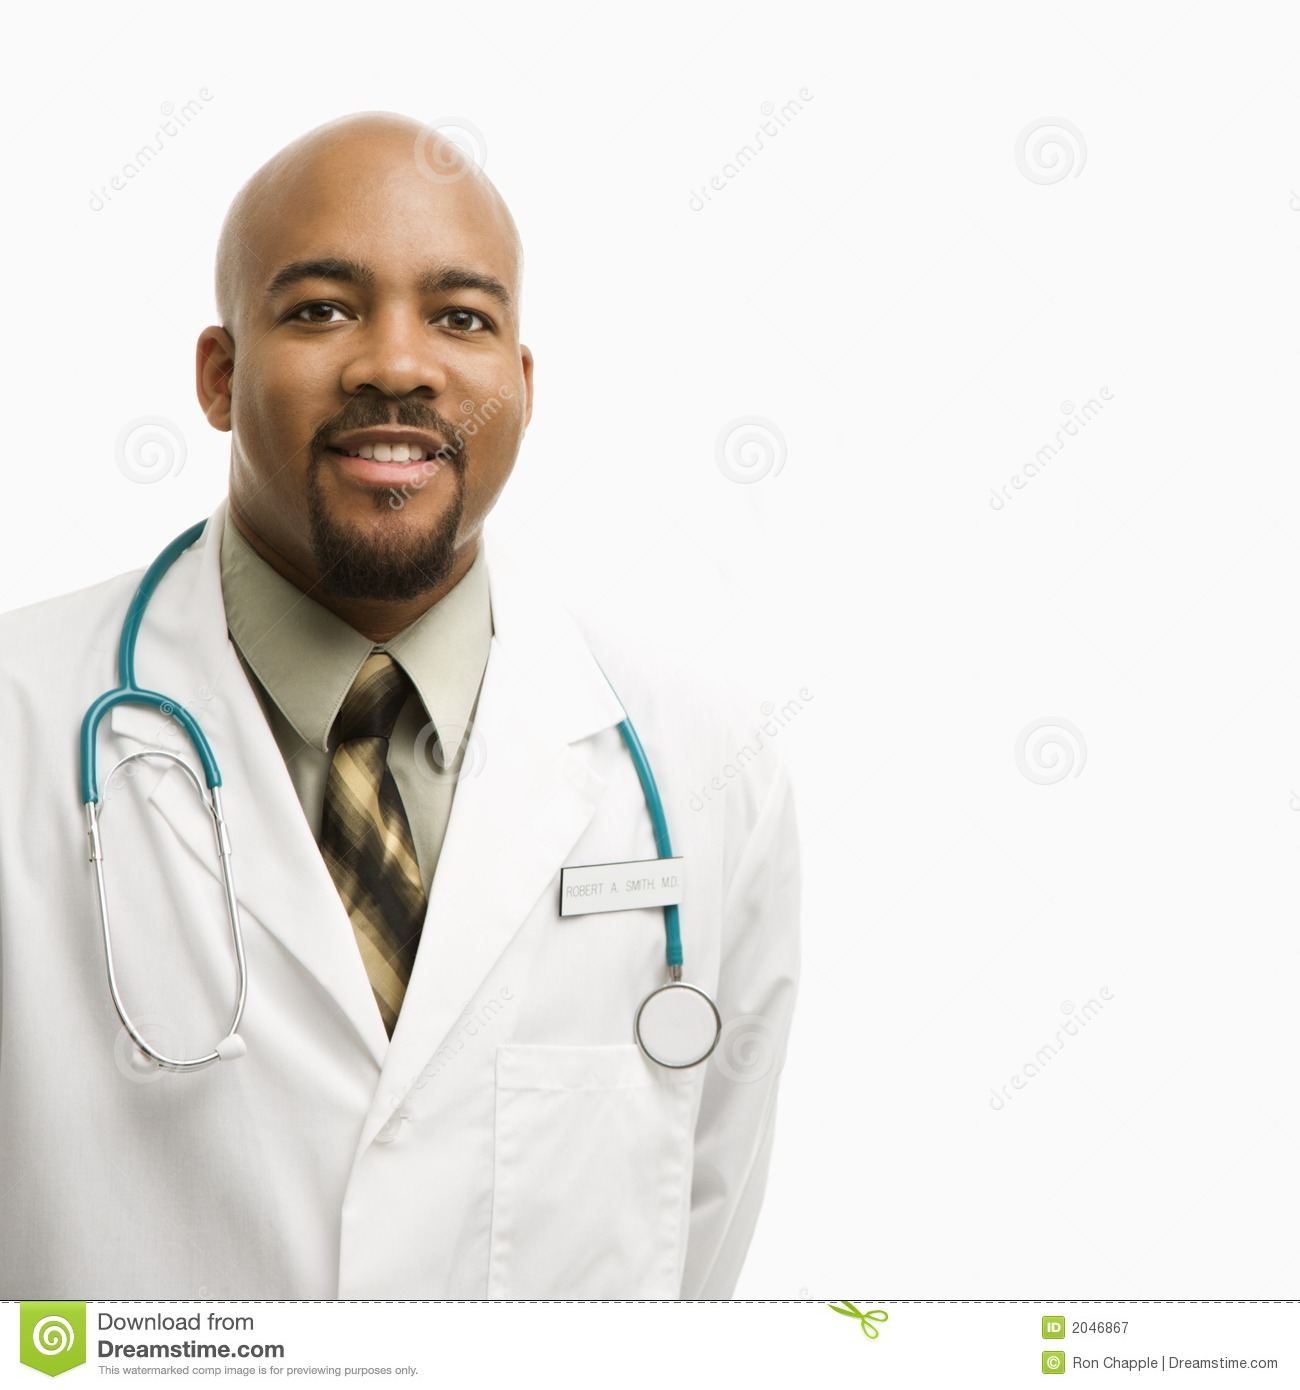 ... -American Doctor Royalty Free Stock Photography - Image: 2046867: www.dreamstime.com/royalty-free-stock-photography-african-american...